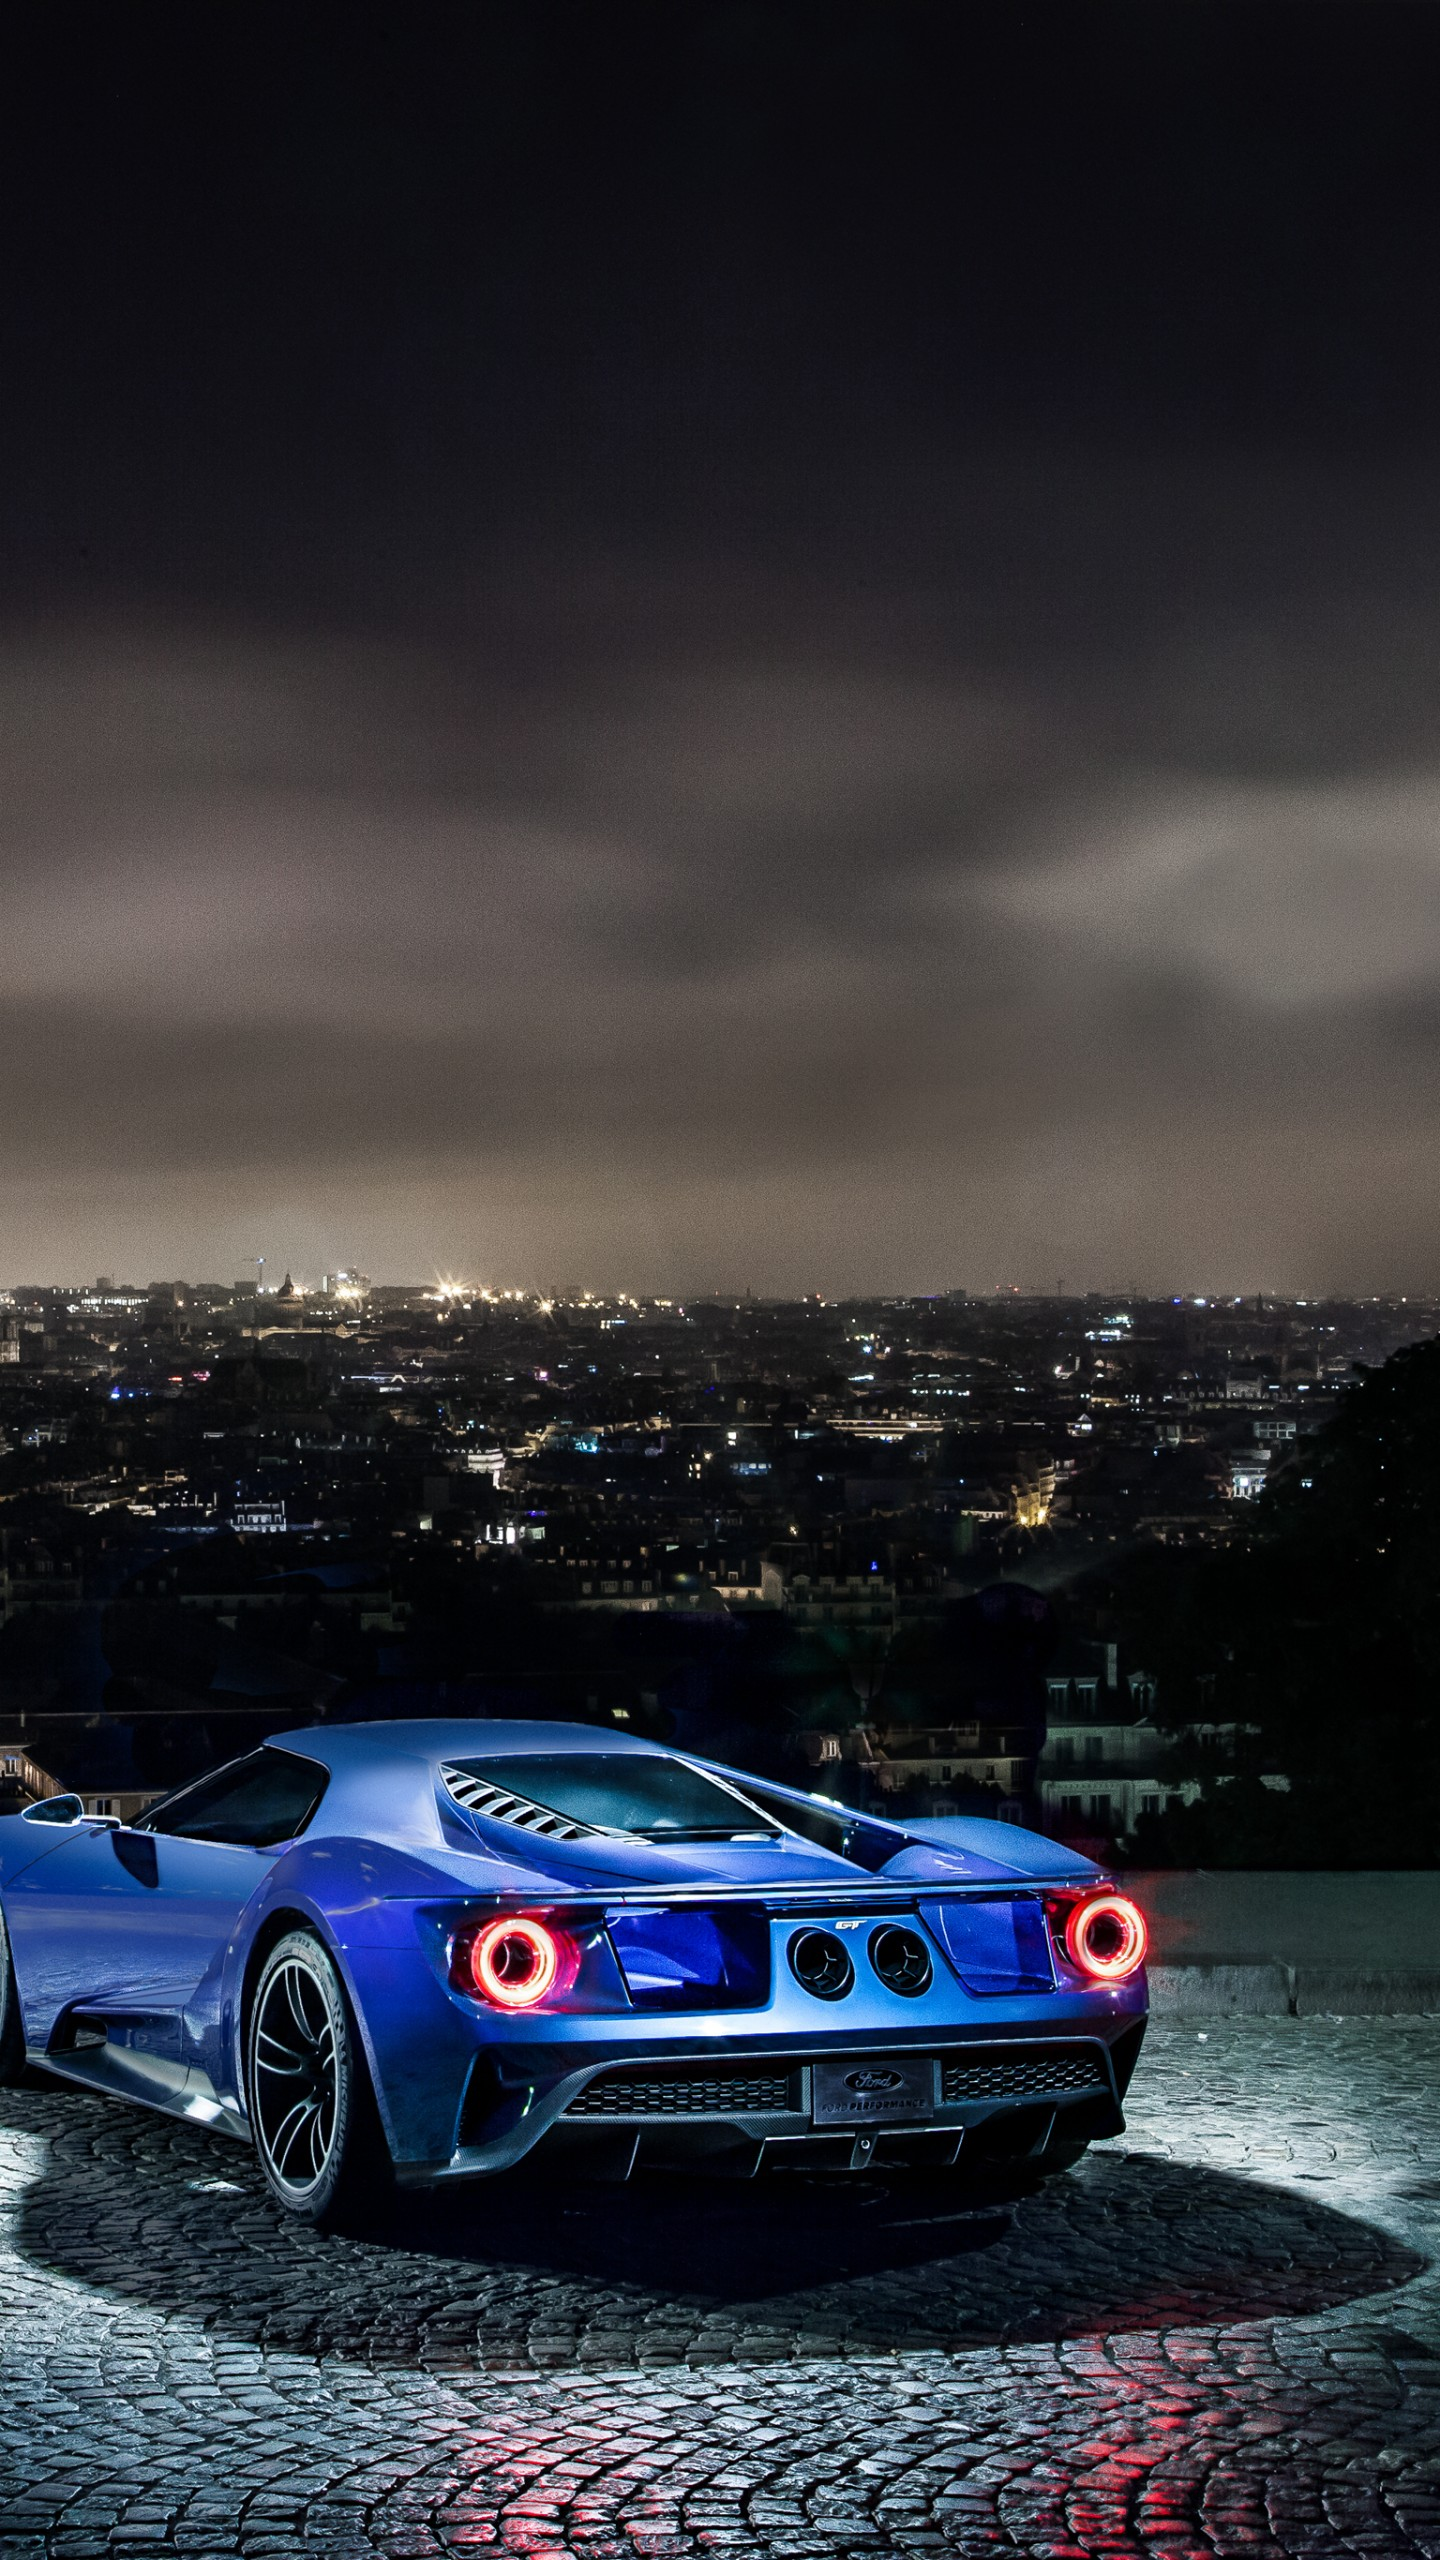 Car Wallpaper Smartphone Wallpaper Ford Gt Supercar Concept Blue Sports Car